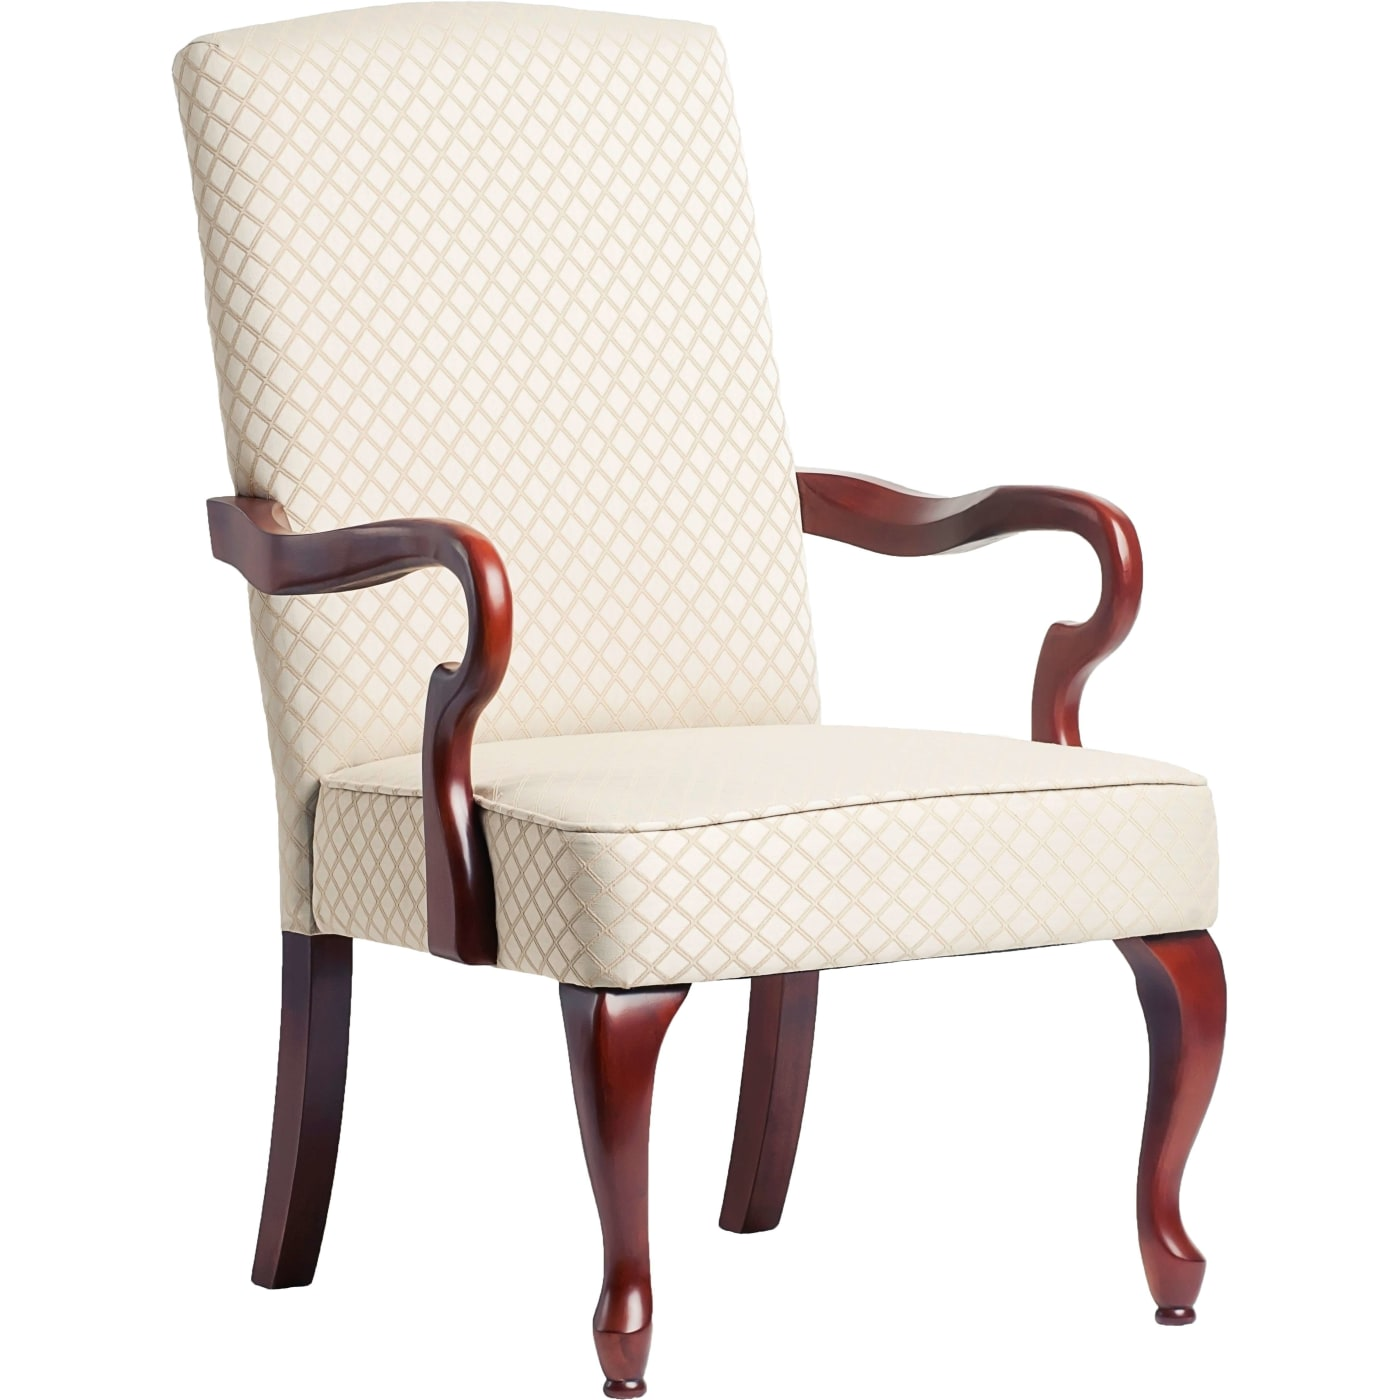 Derby Beige Gooseneck Arm Chair. COMP 6700 Beige ...